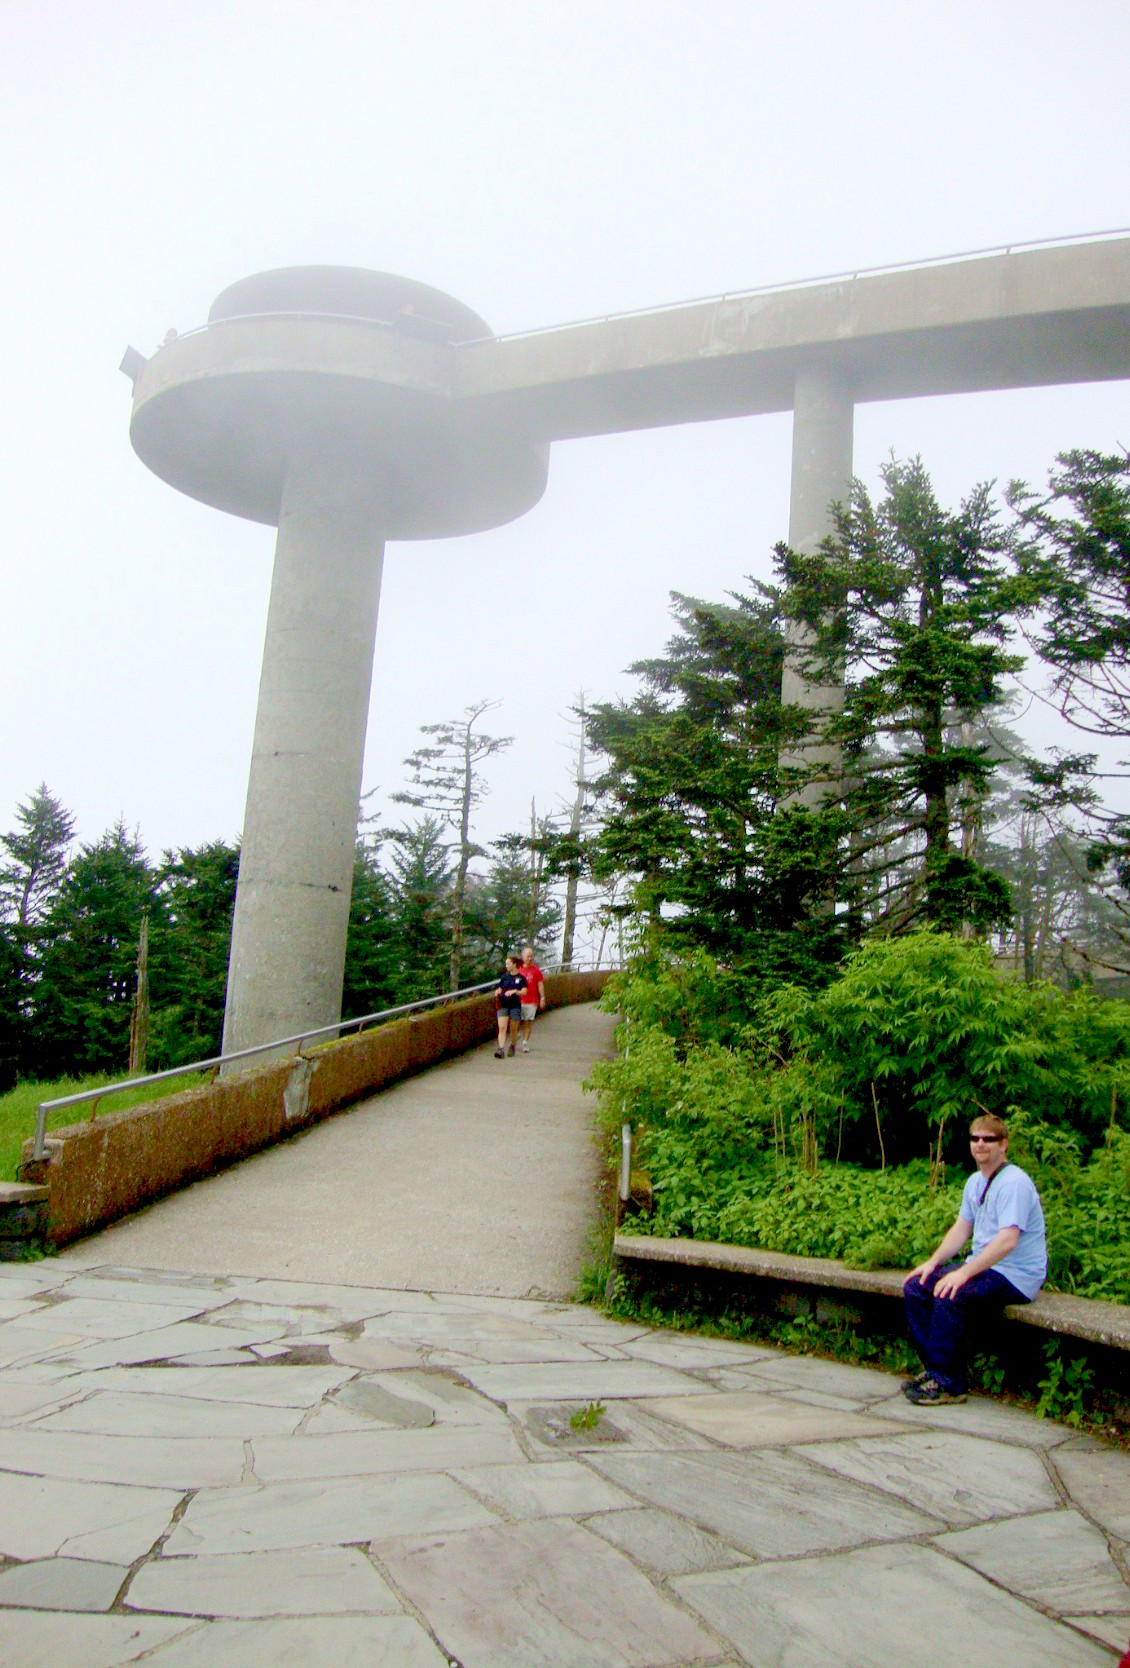 At the Clingmans Dome in Pigeon Forge, TN